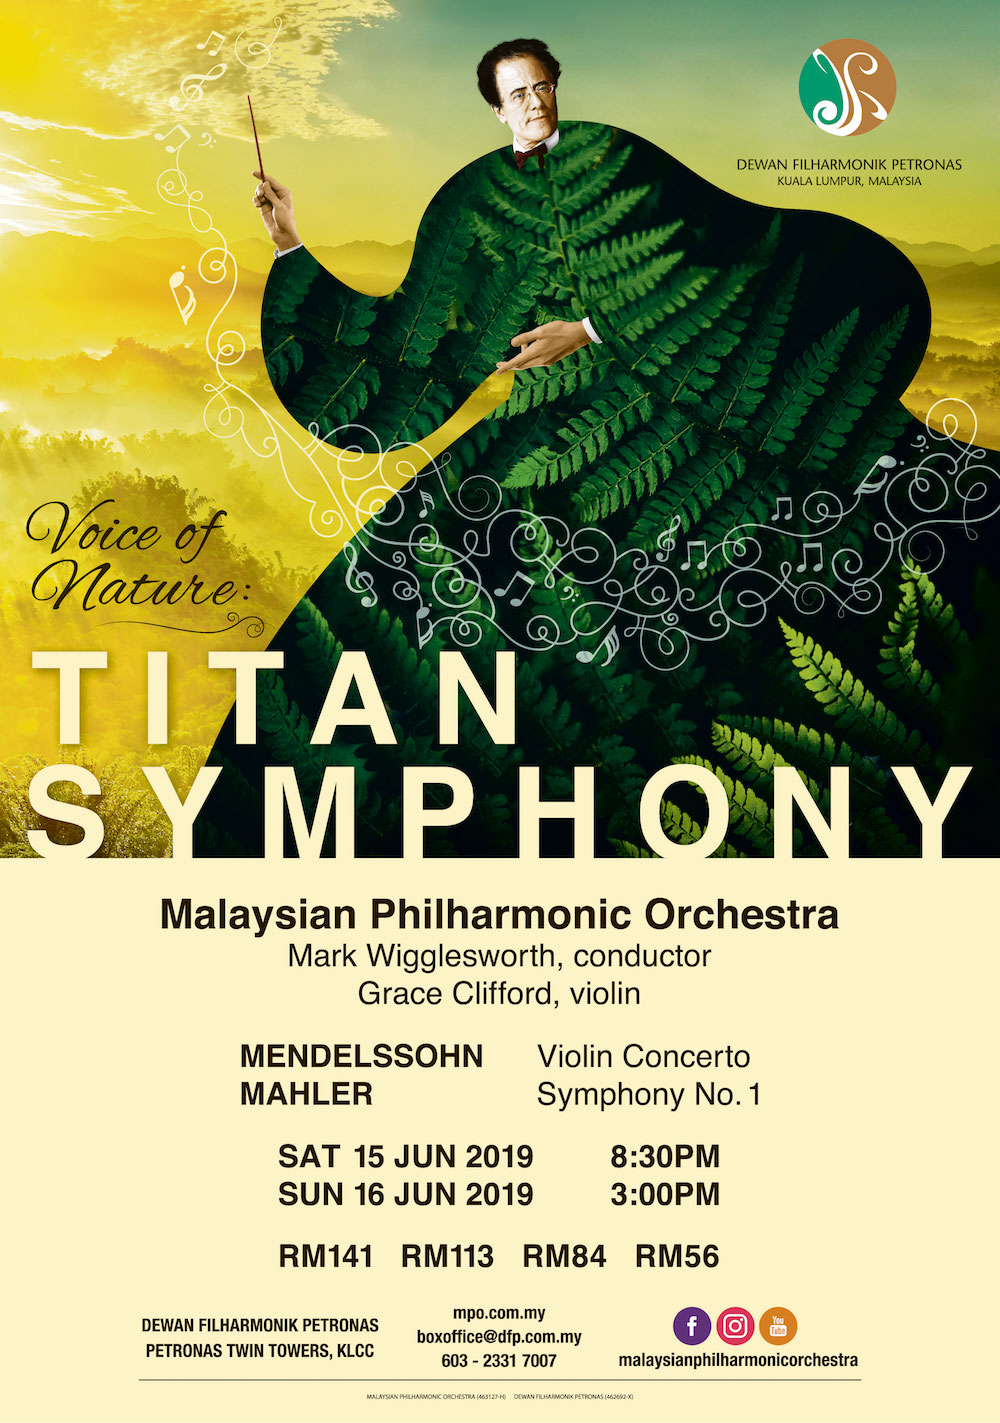 Malaysian Philharmonic Orchestra is set to present two contrasting classical gems in the 'Voice of Nature' concert next weekend. — Picture courtesy of Malaysian Philharmonic Orchestra